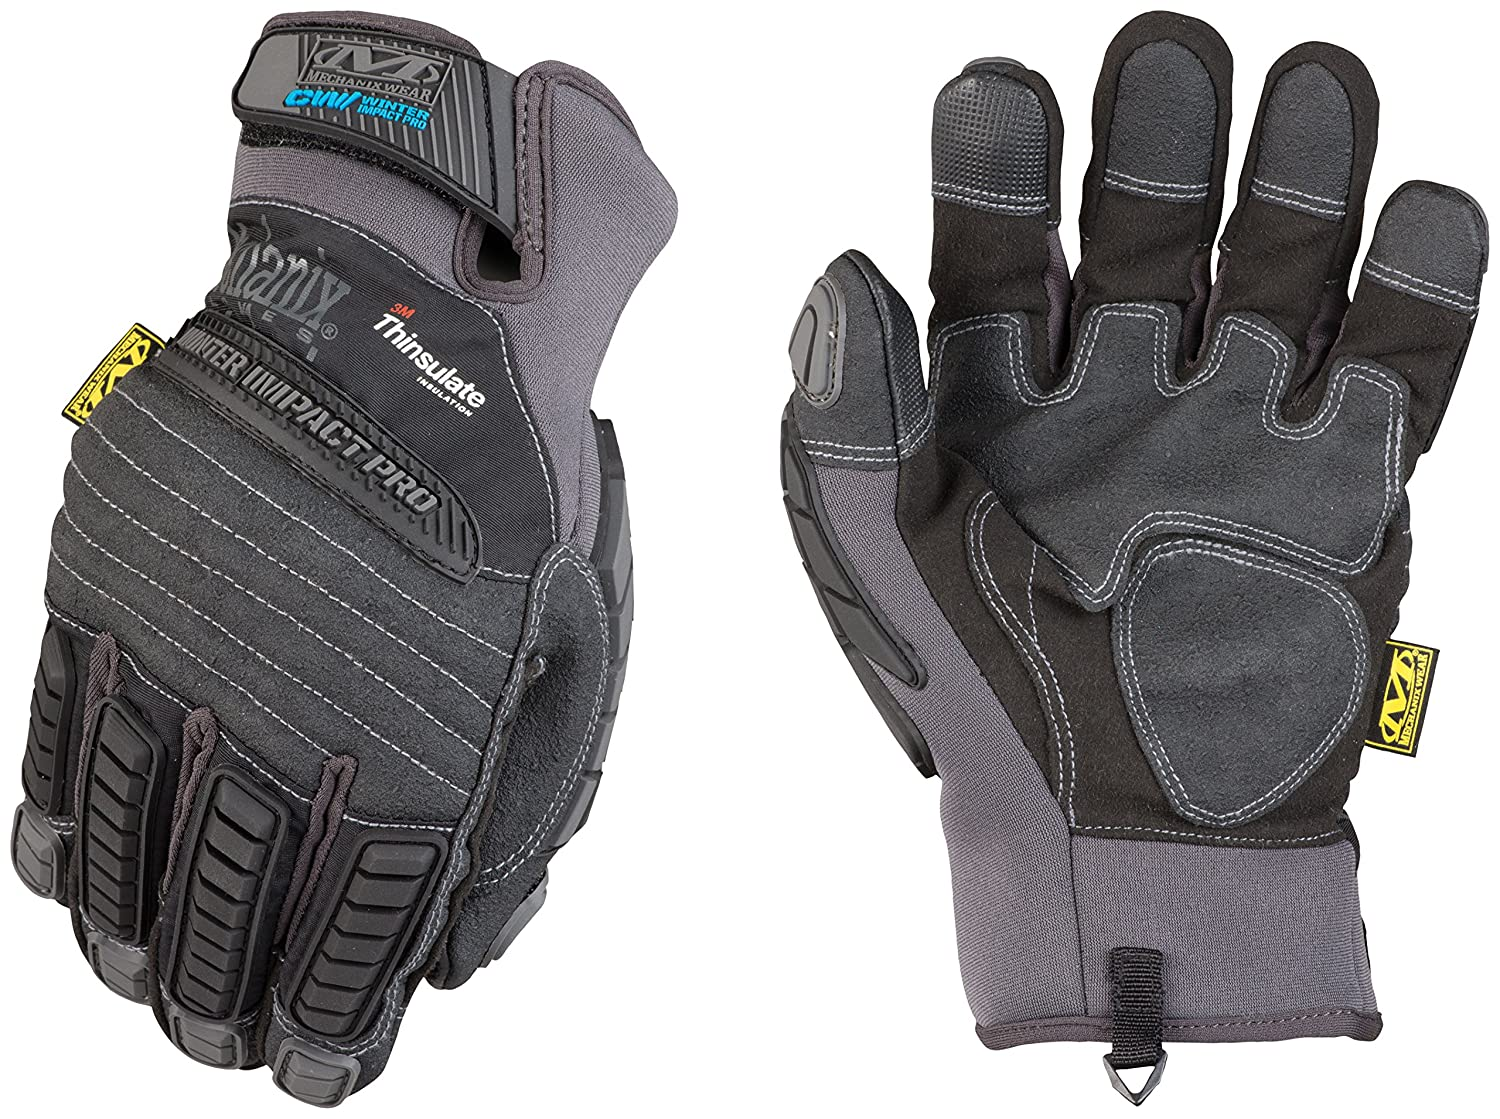 Mechanix Wear Winter Impact Pro